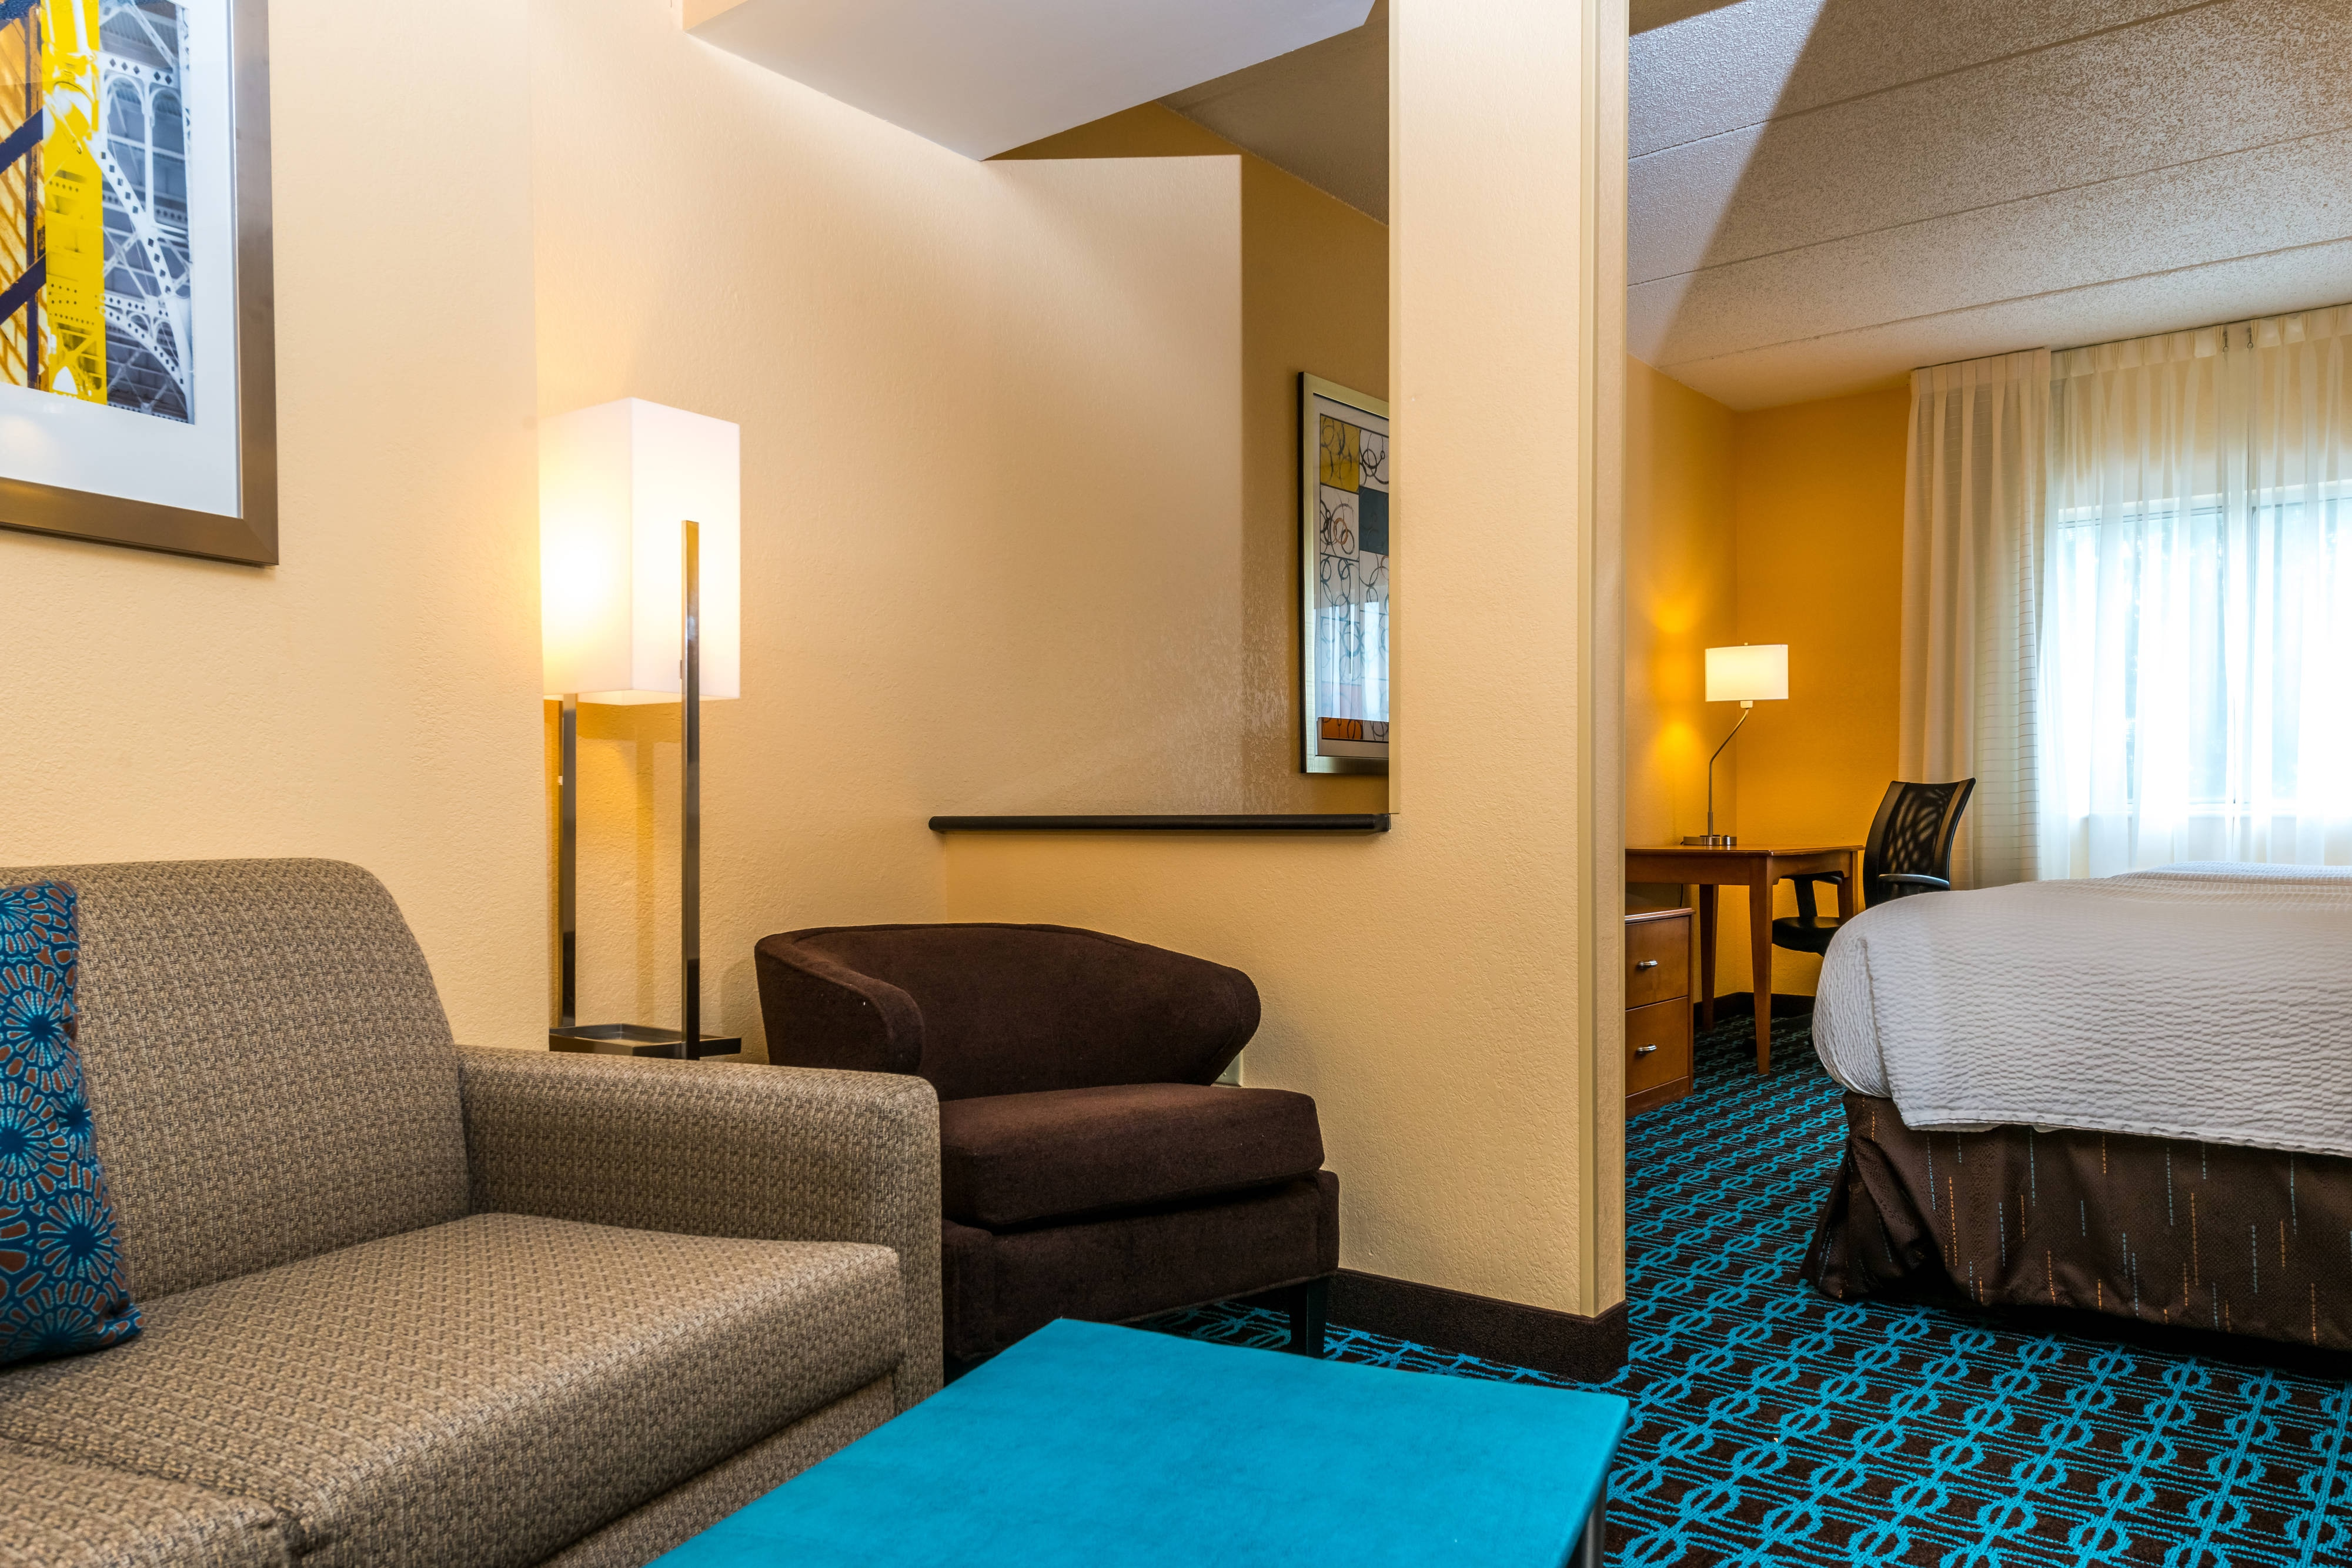 child pull out sofa waterfall charles of london nashville tn hotels | rooms & suites fairfield inn